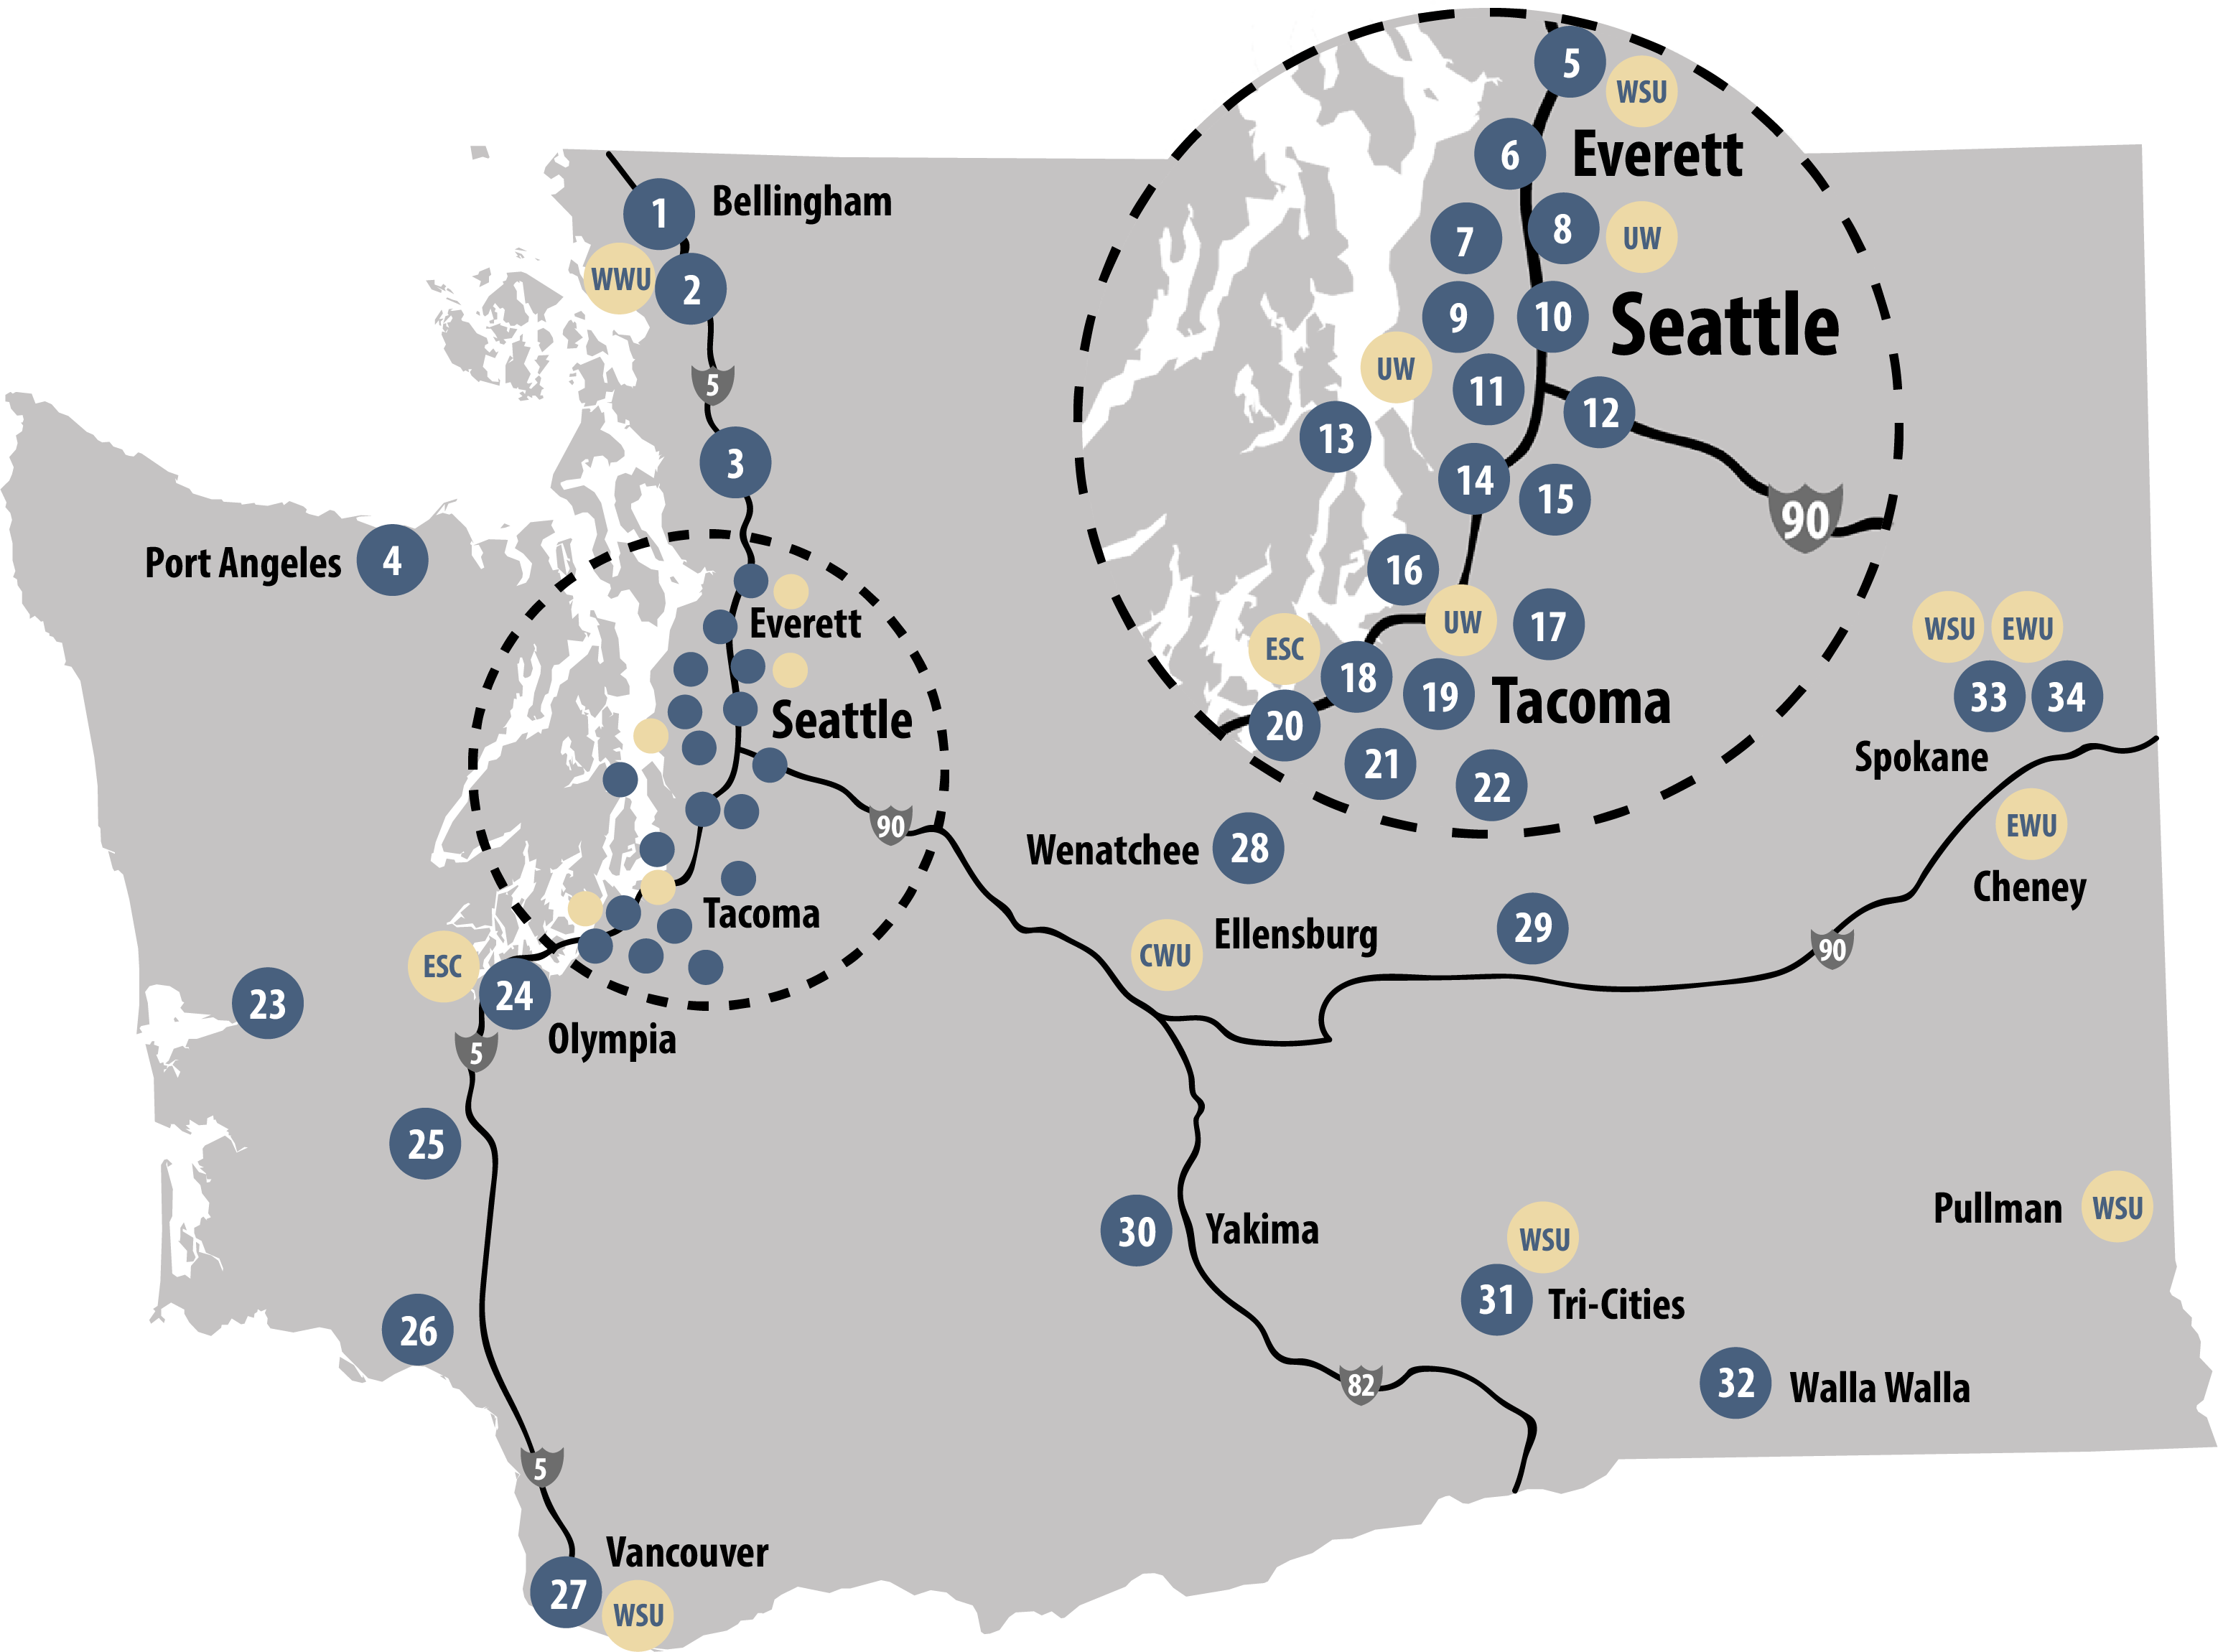 Map of higher education institutions in Washington